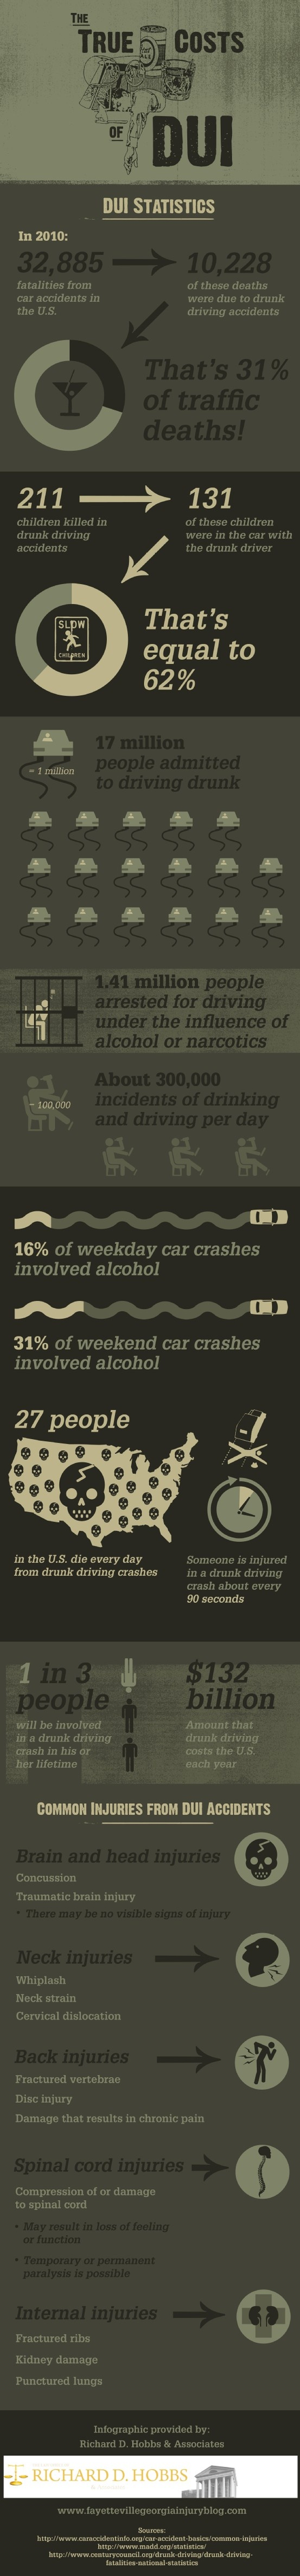 images about communications cars the zoo and 1 in 3 people is involved in a drunk driving crash in his or her lifetime